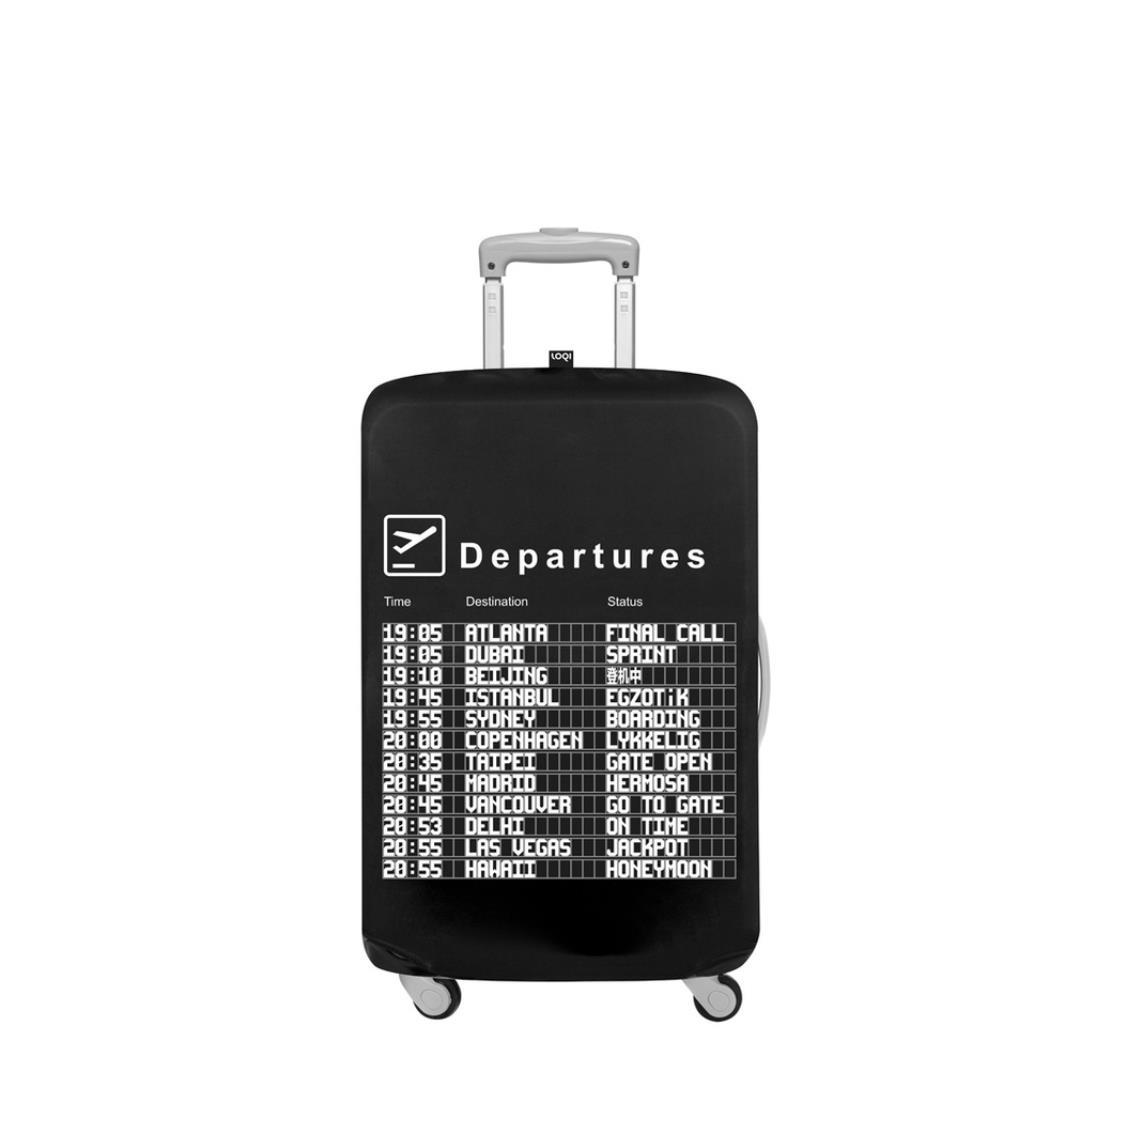 Airport Luggage Cover - Arrivals